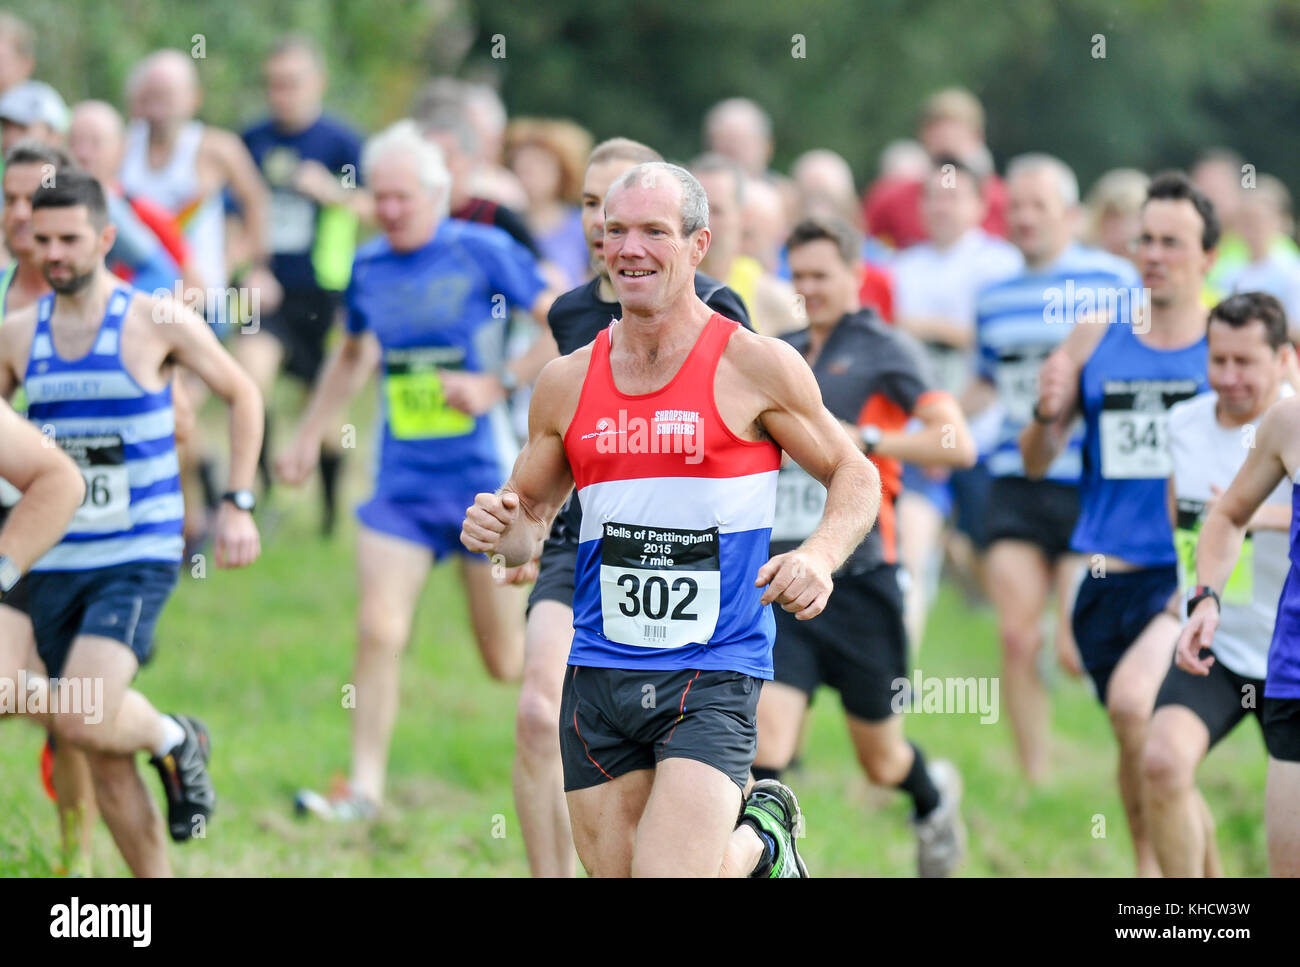 Male cross country runner after leaving the start line of a race in Staffordshire, England, UK - Stock Image